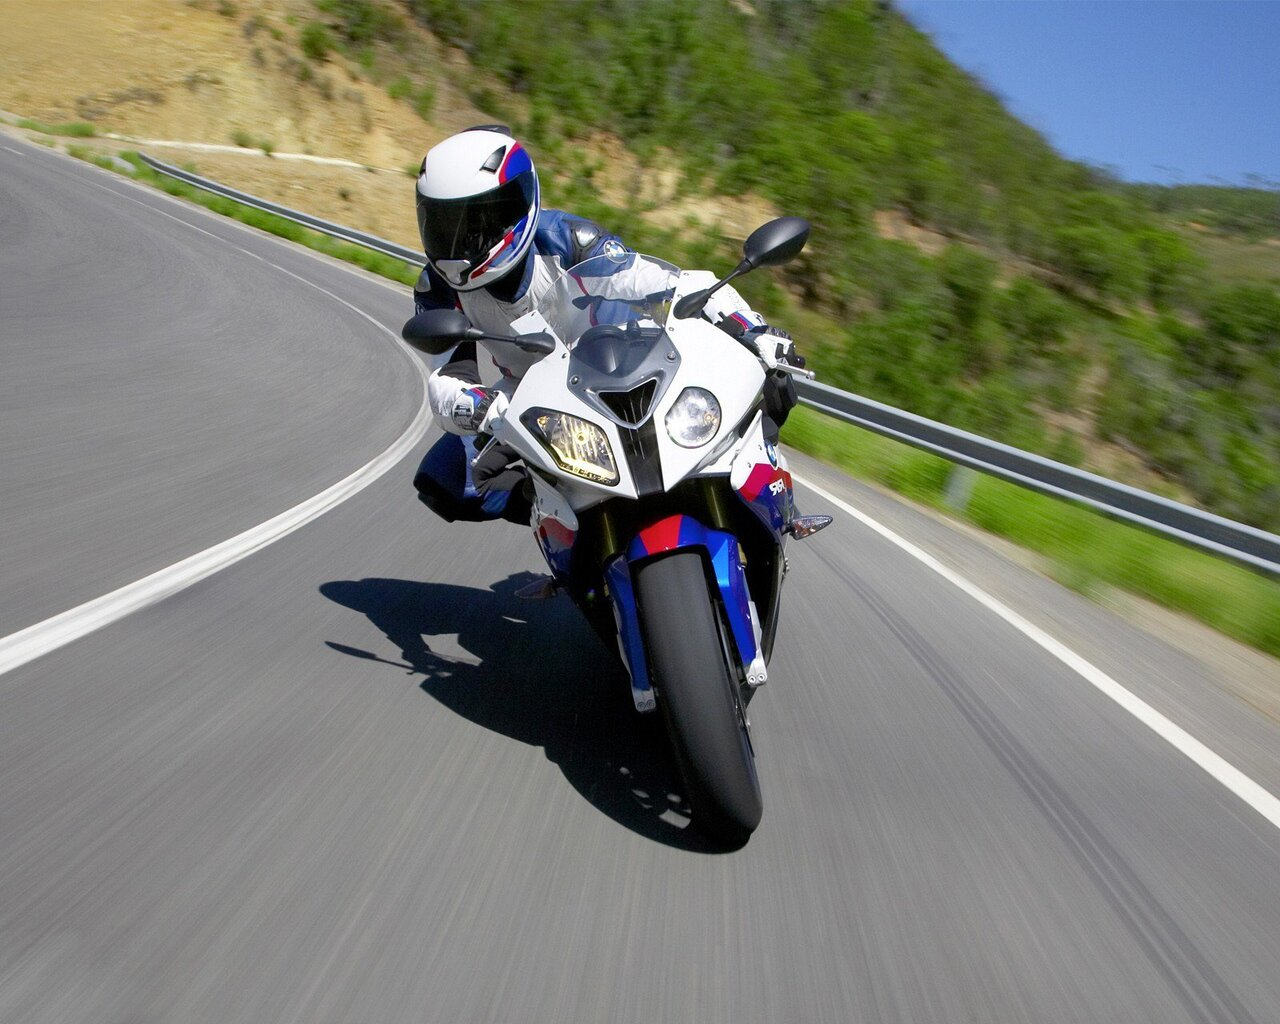 1280x1024 Bmw S1000rr 1280x1024 Resolution Hd 4k Wallpapers Images